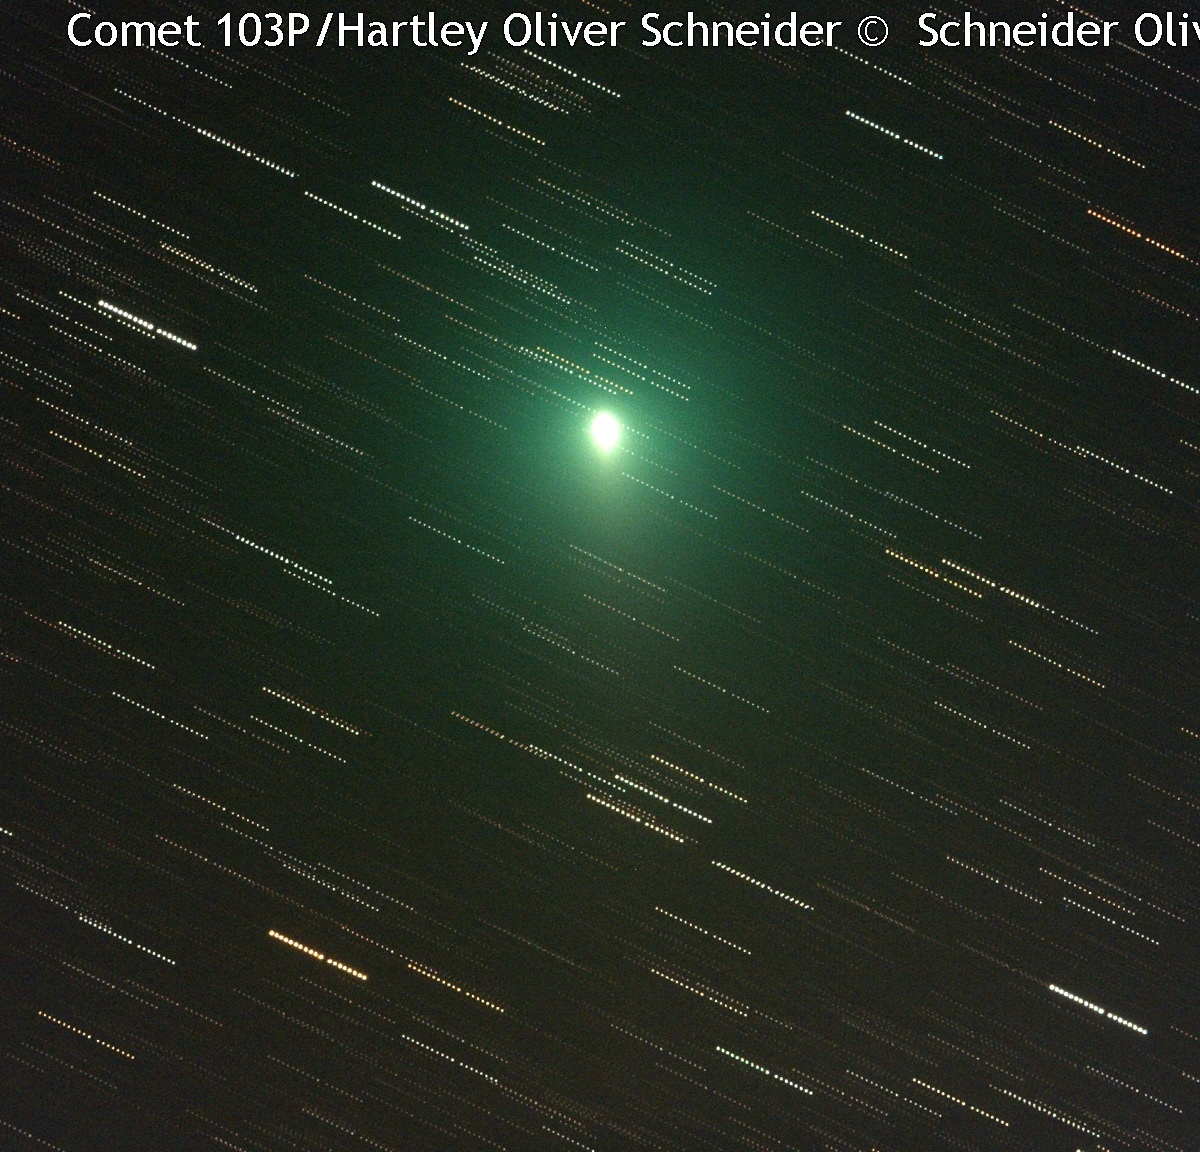 Solar System-Comet 103P/Hartley © image-owner(s)